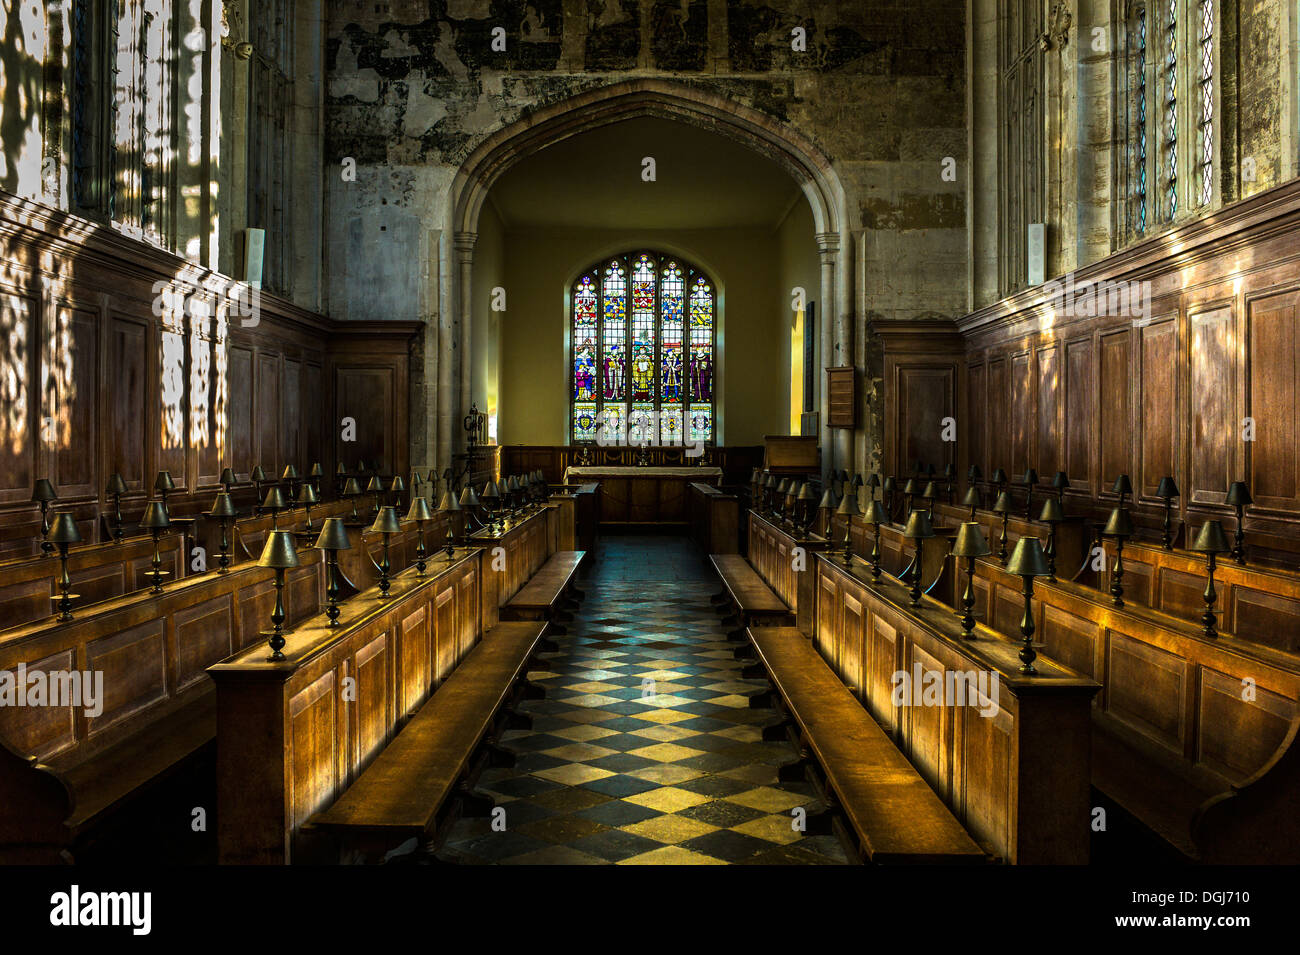 Interior of the Guild Chapel which overlooks the site of New Place where William Shakespeare died in April 1616. - Stock Image